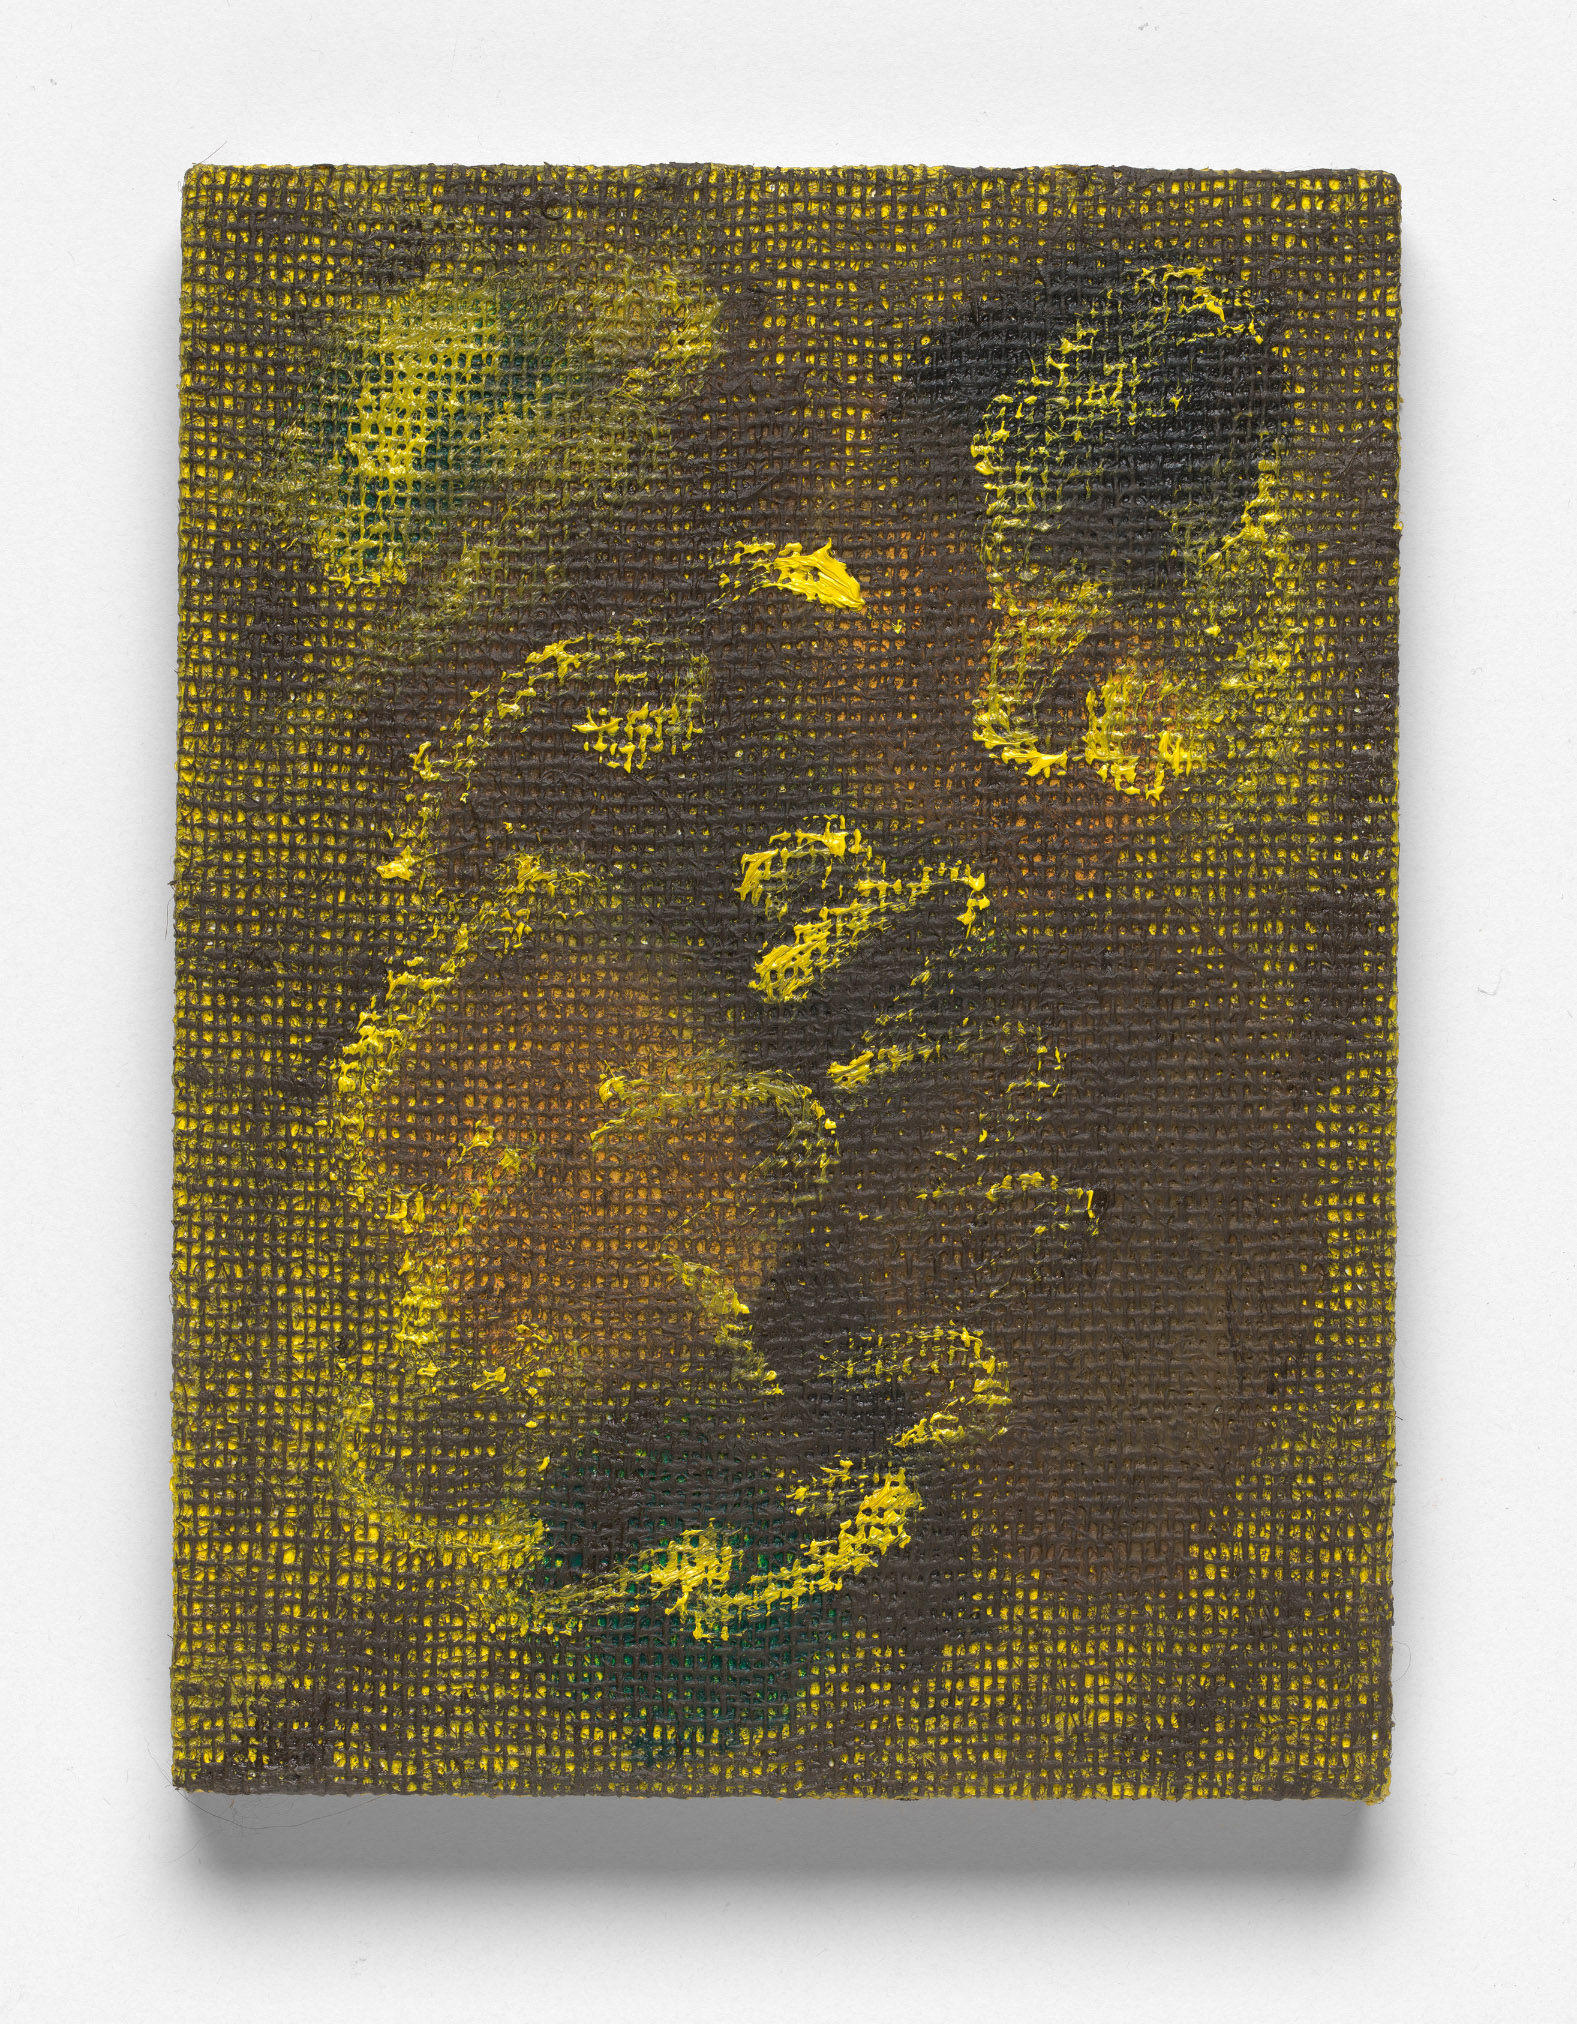 After L'Été 2 (yellow on brown), Oil on Hessian on Board, 30 x 23cm, 2019. Photograph by Matthew Stanton.